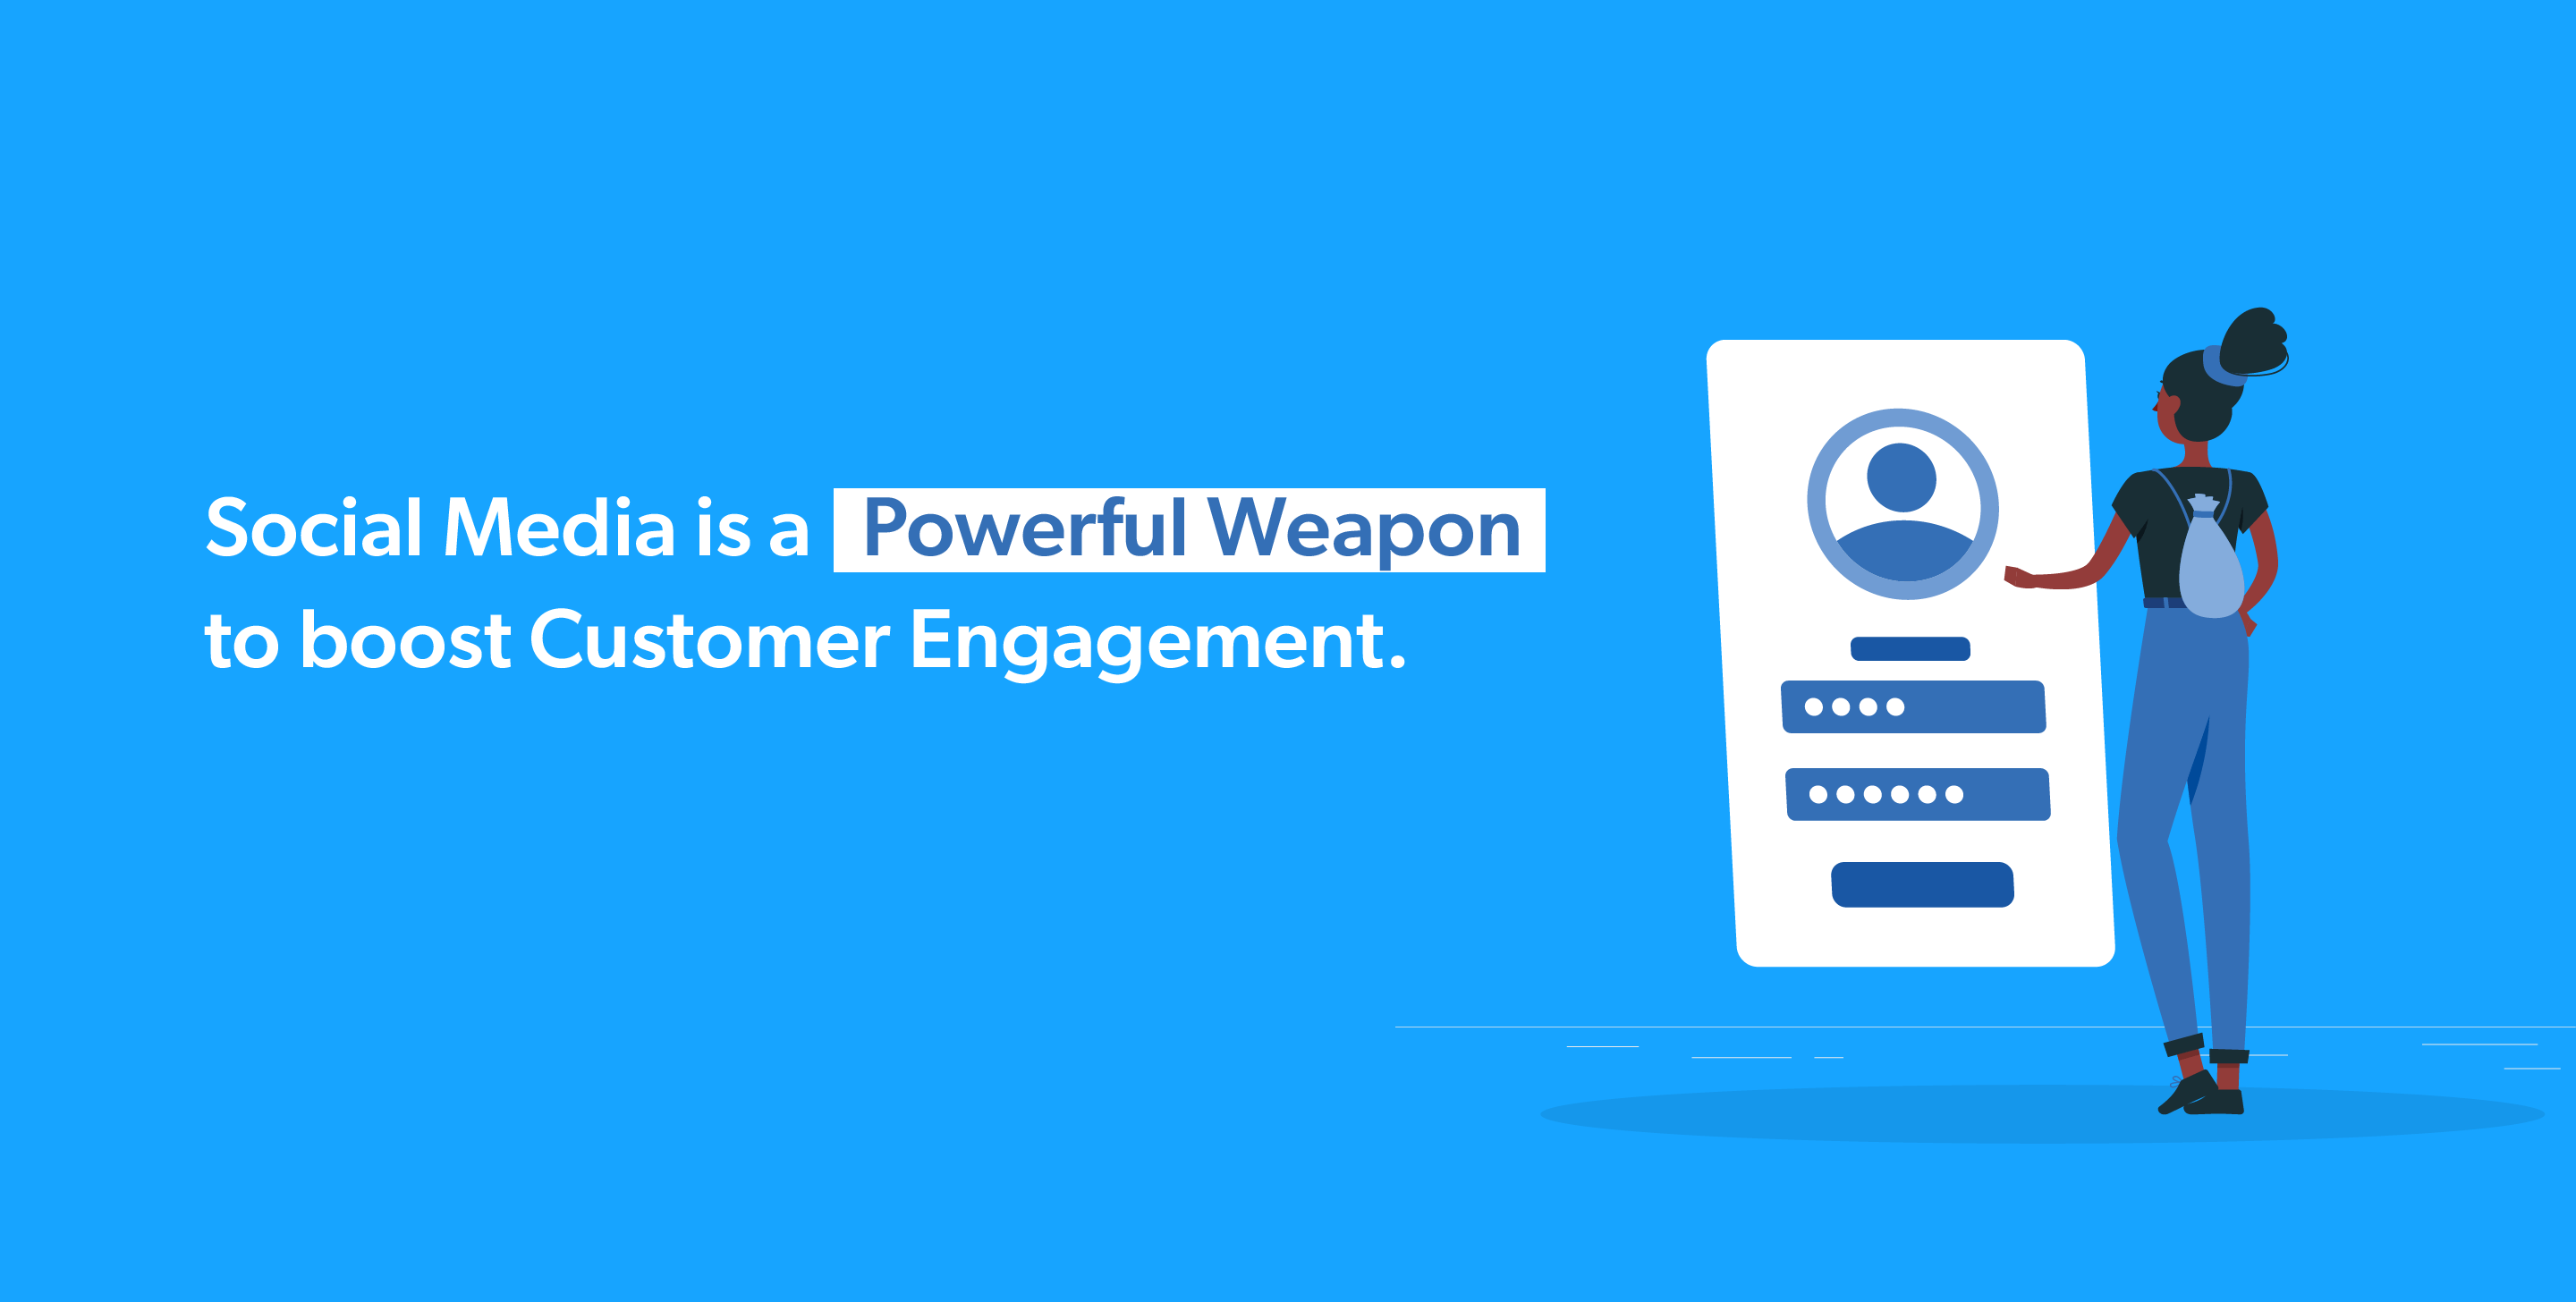 Social Media is a Powerful Weapon to boost Customer Engagement.